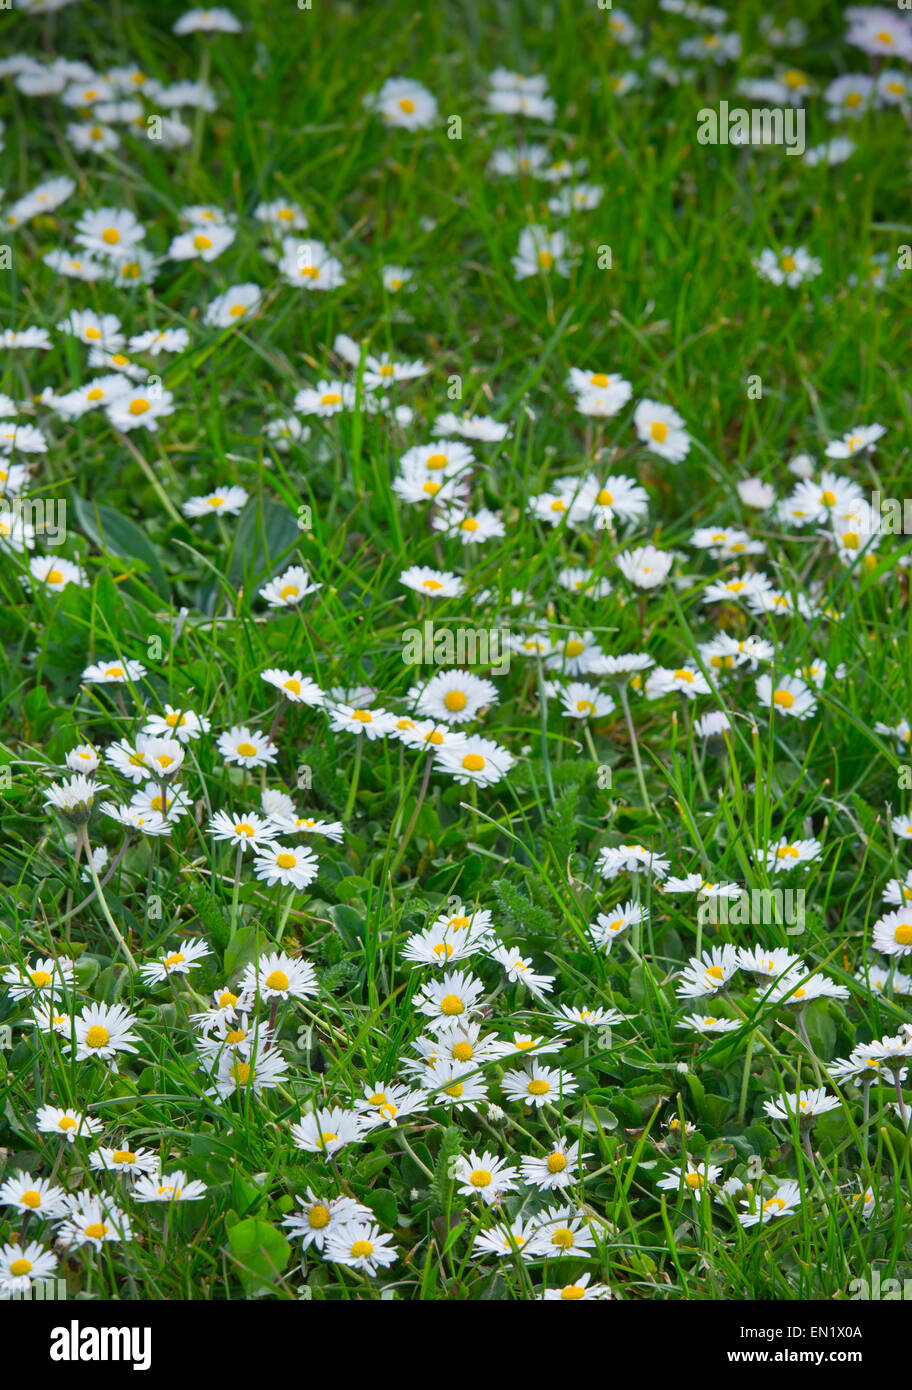 Daisy Flowers In Grass Lawn Daisies Stock Photo 81791594 Alamy